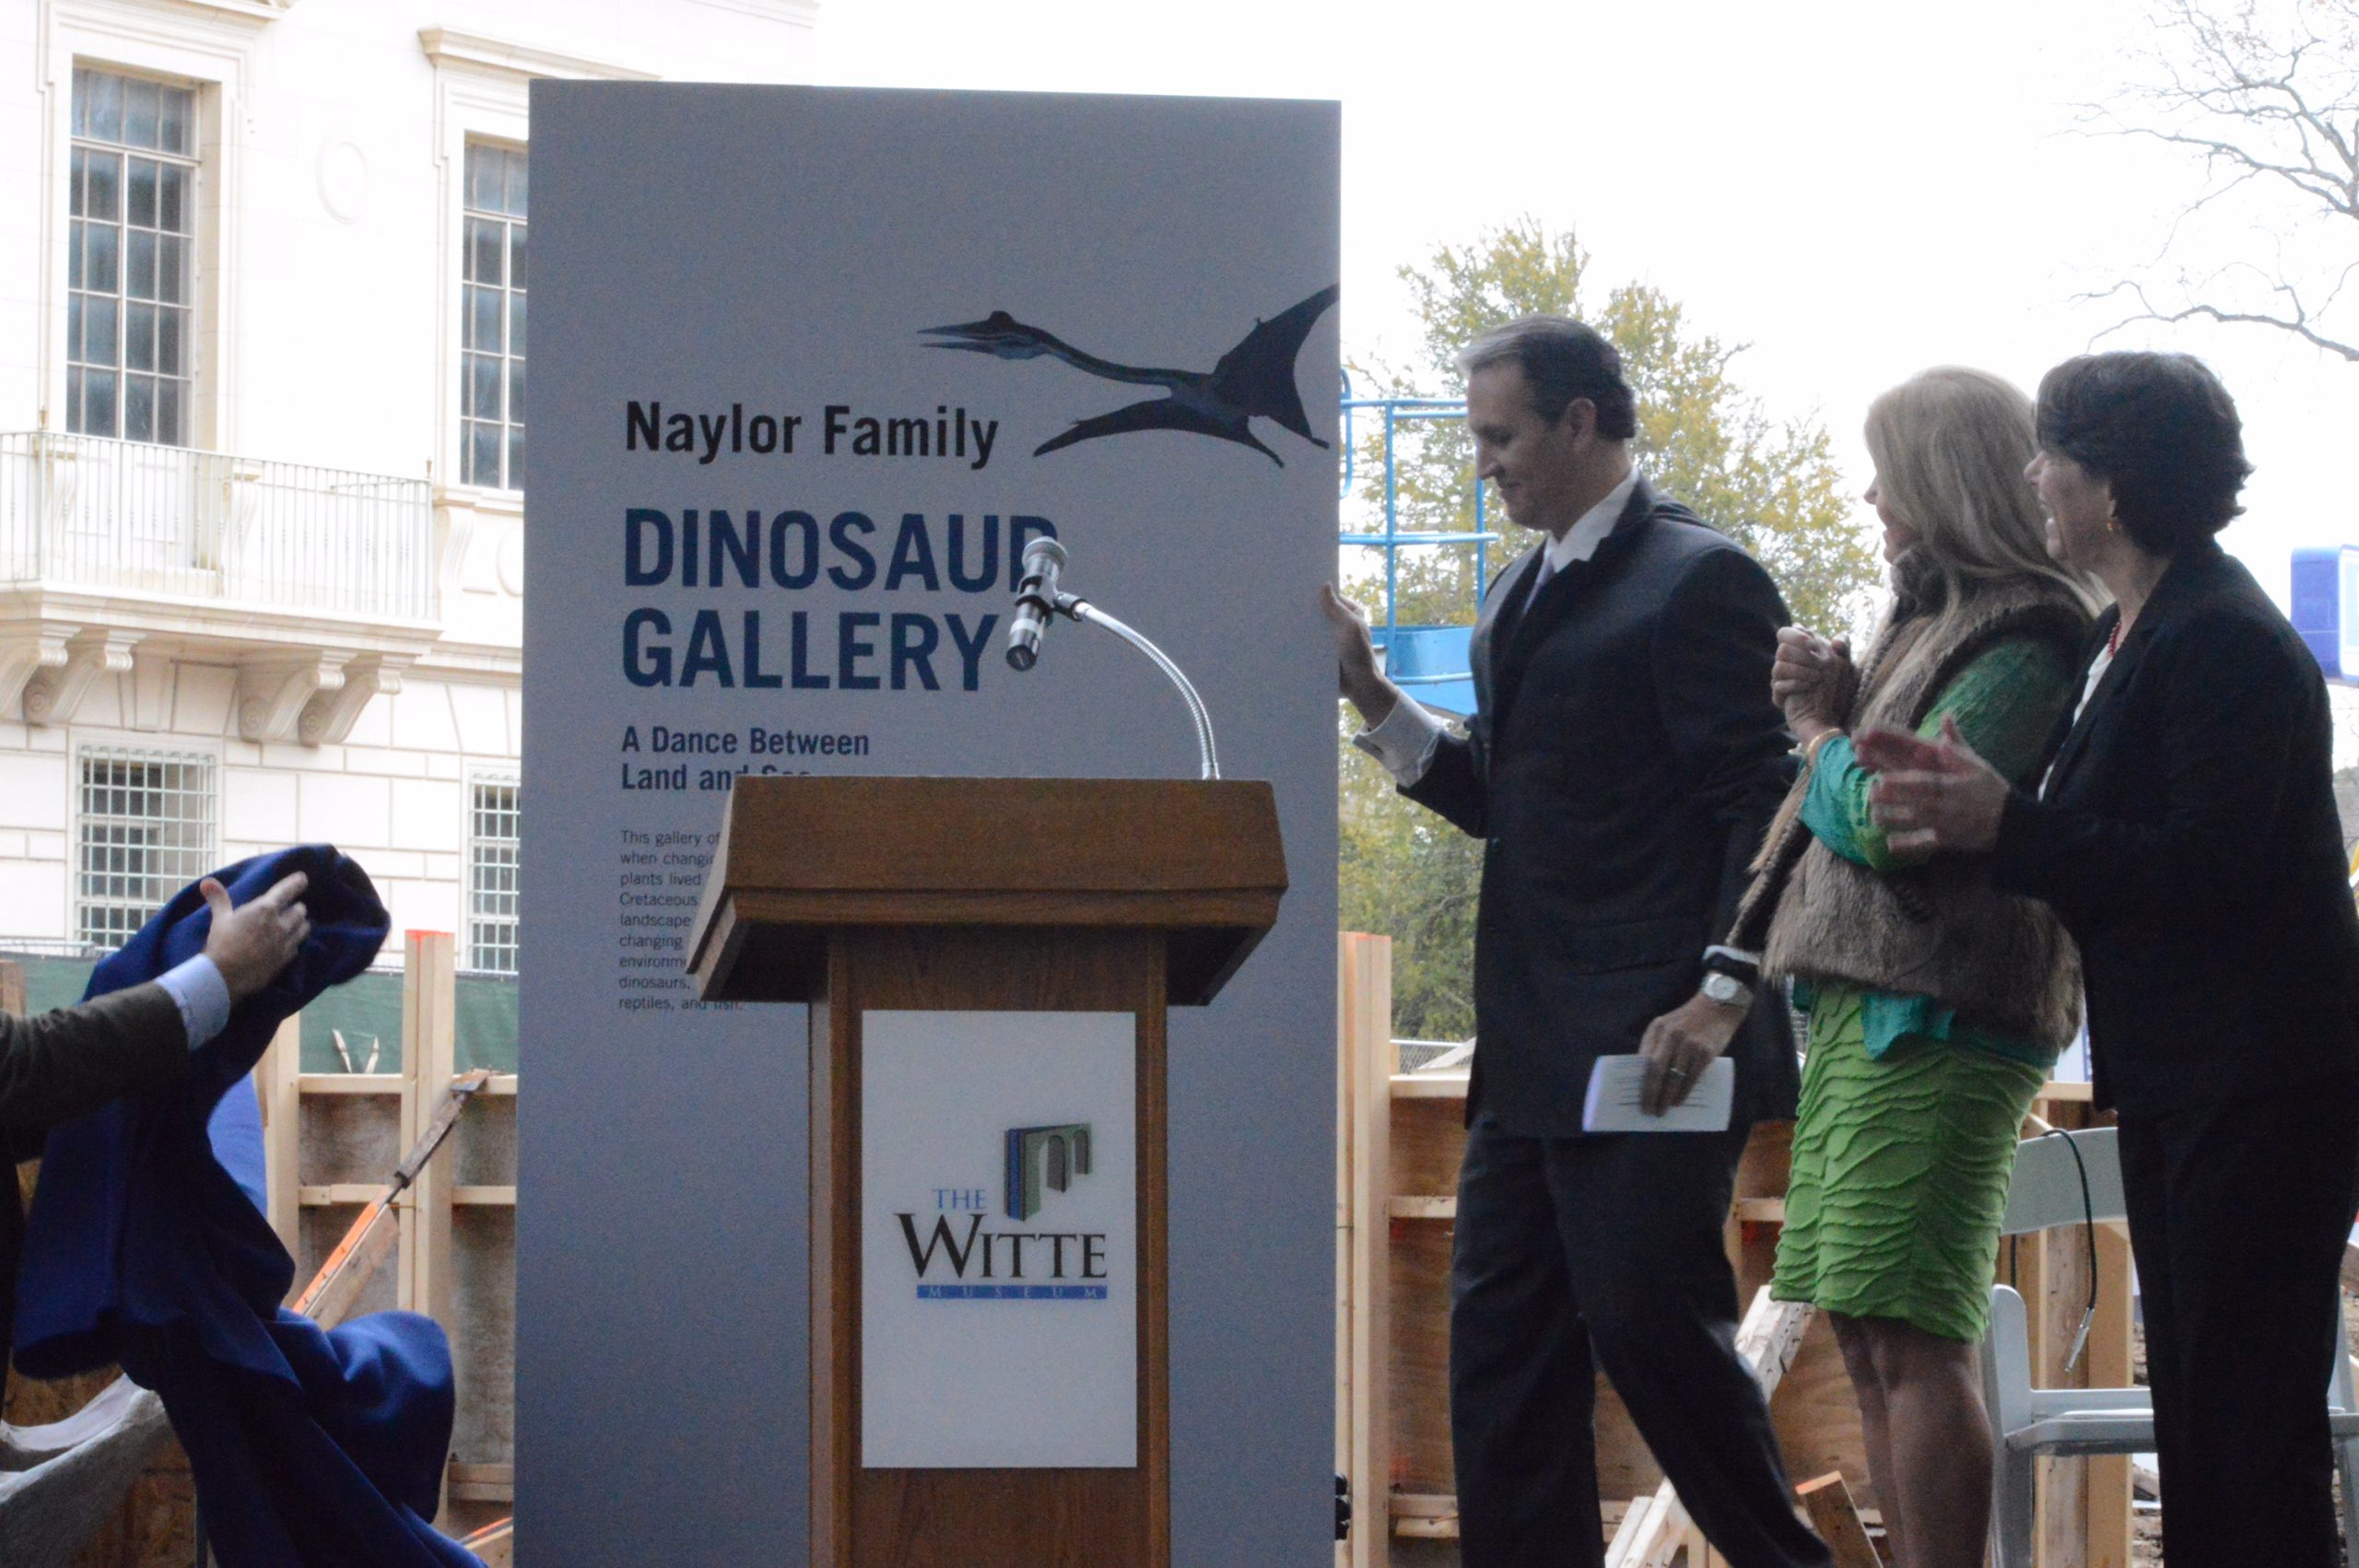 Officials reveal the signage for the Naylor Family Dinosaur Gallery at the Witte Museum. Photo by Lea Thompson.